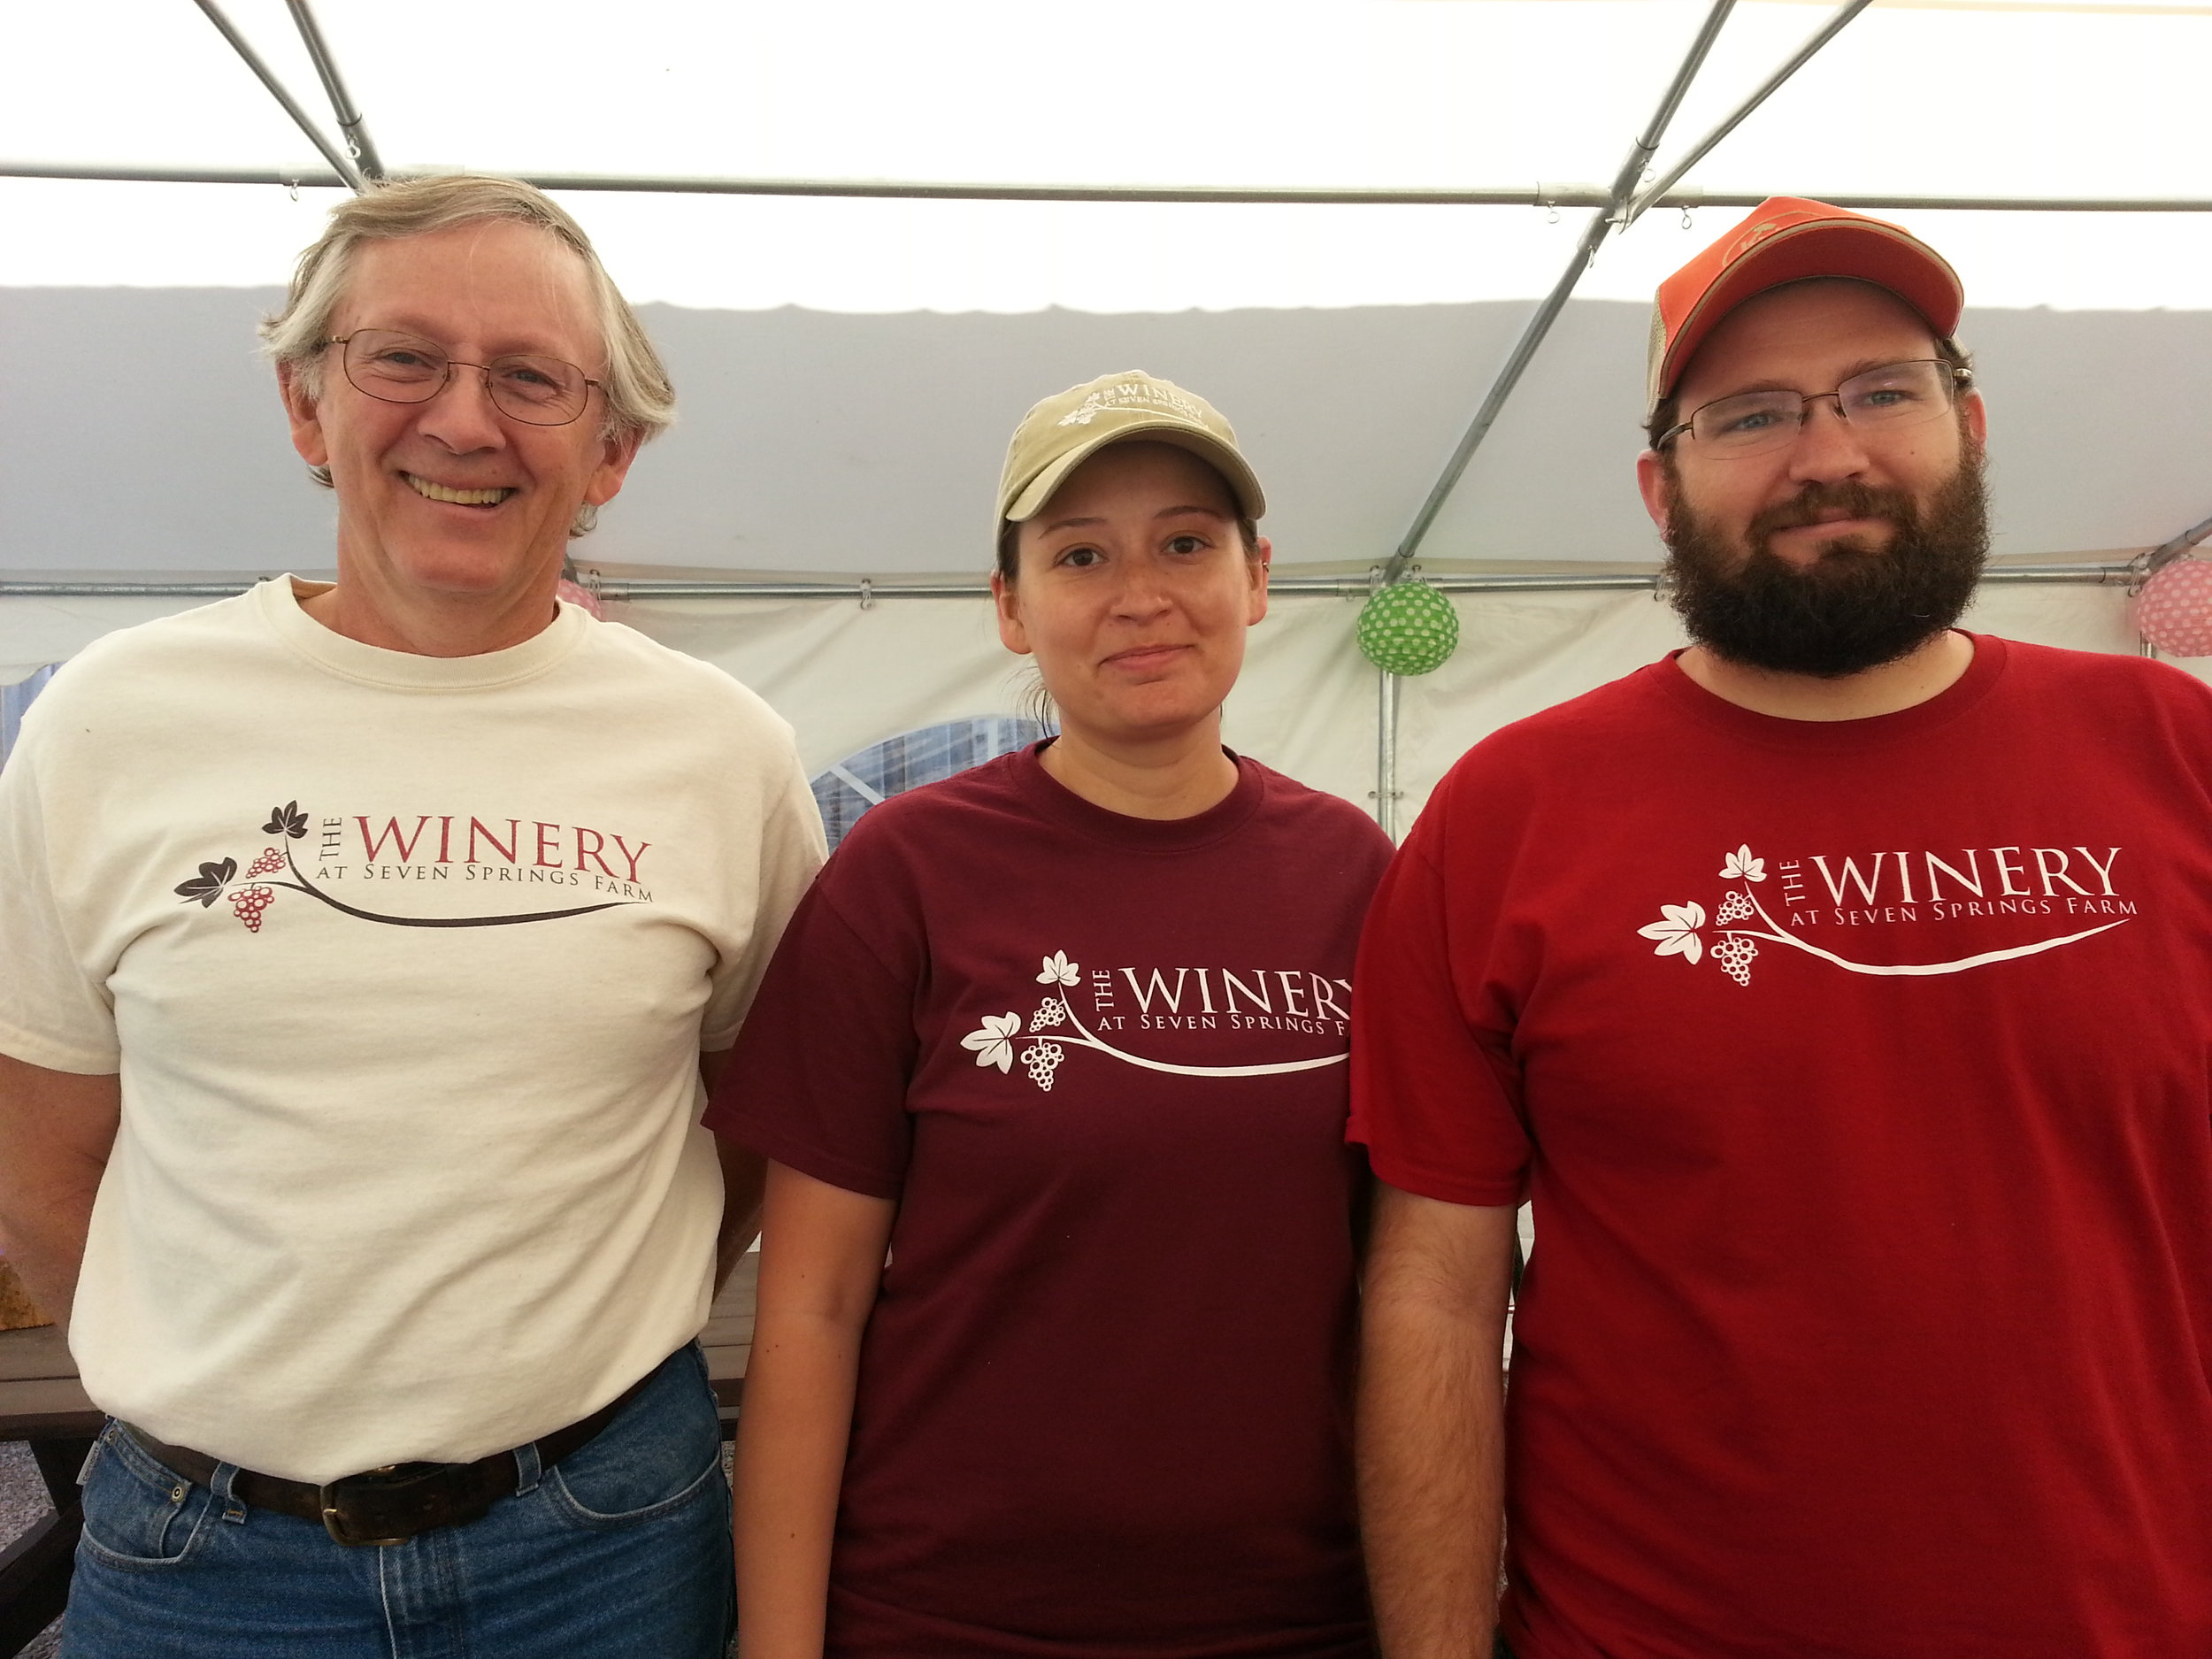 Pictured James Riddle, Nikki Riddle, and Michael Coombs of The Winery at Seven Sroings.